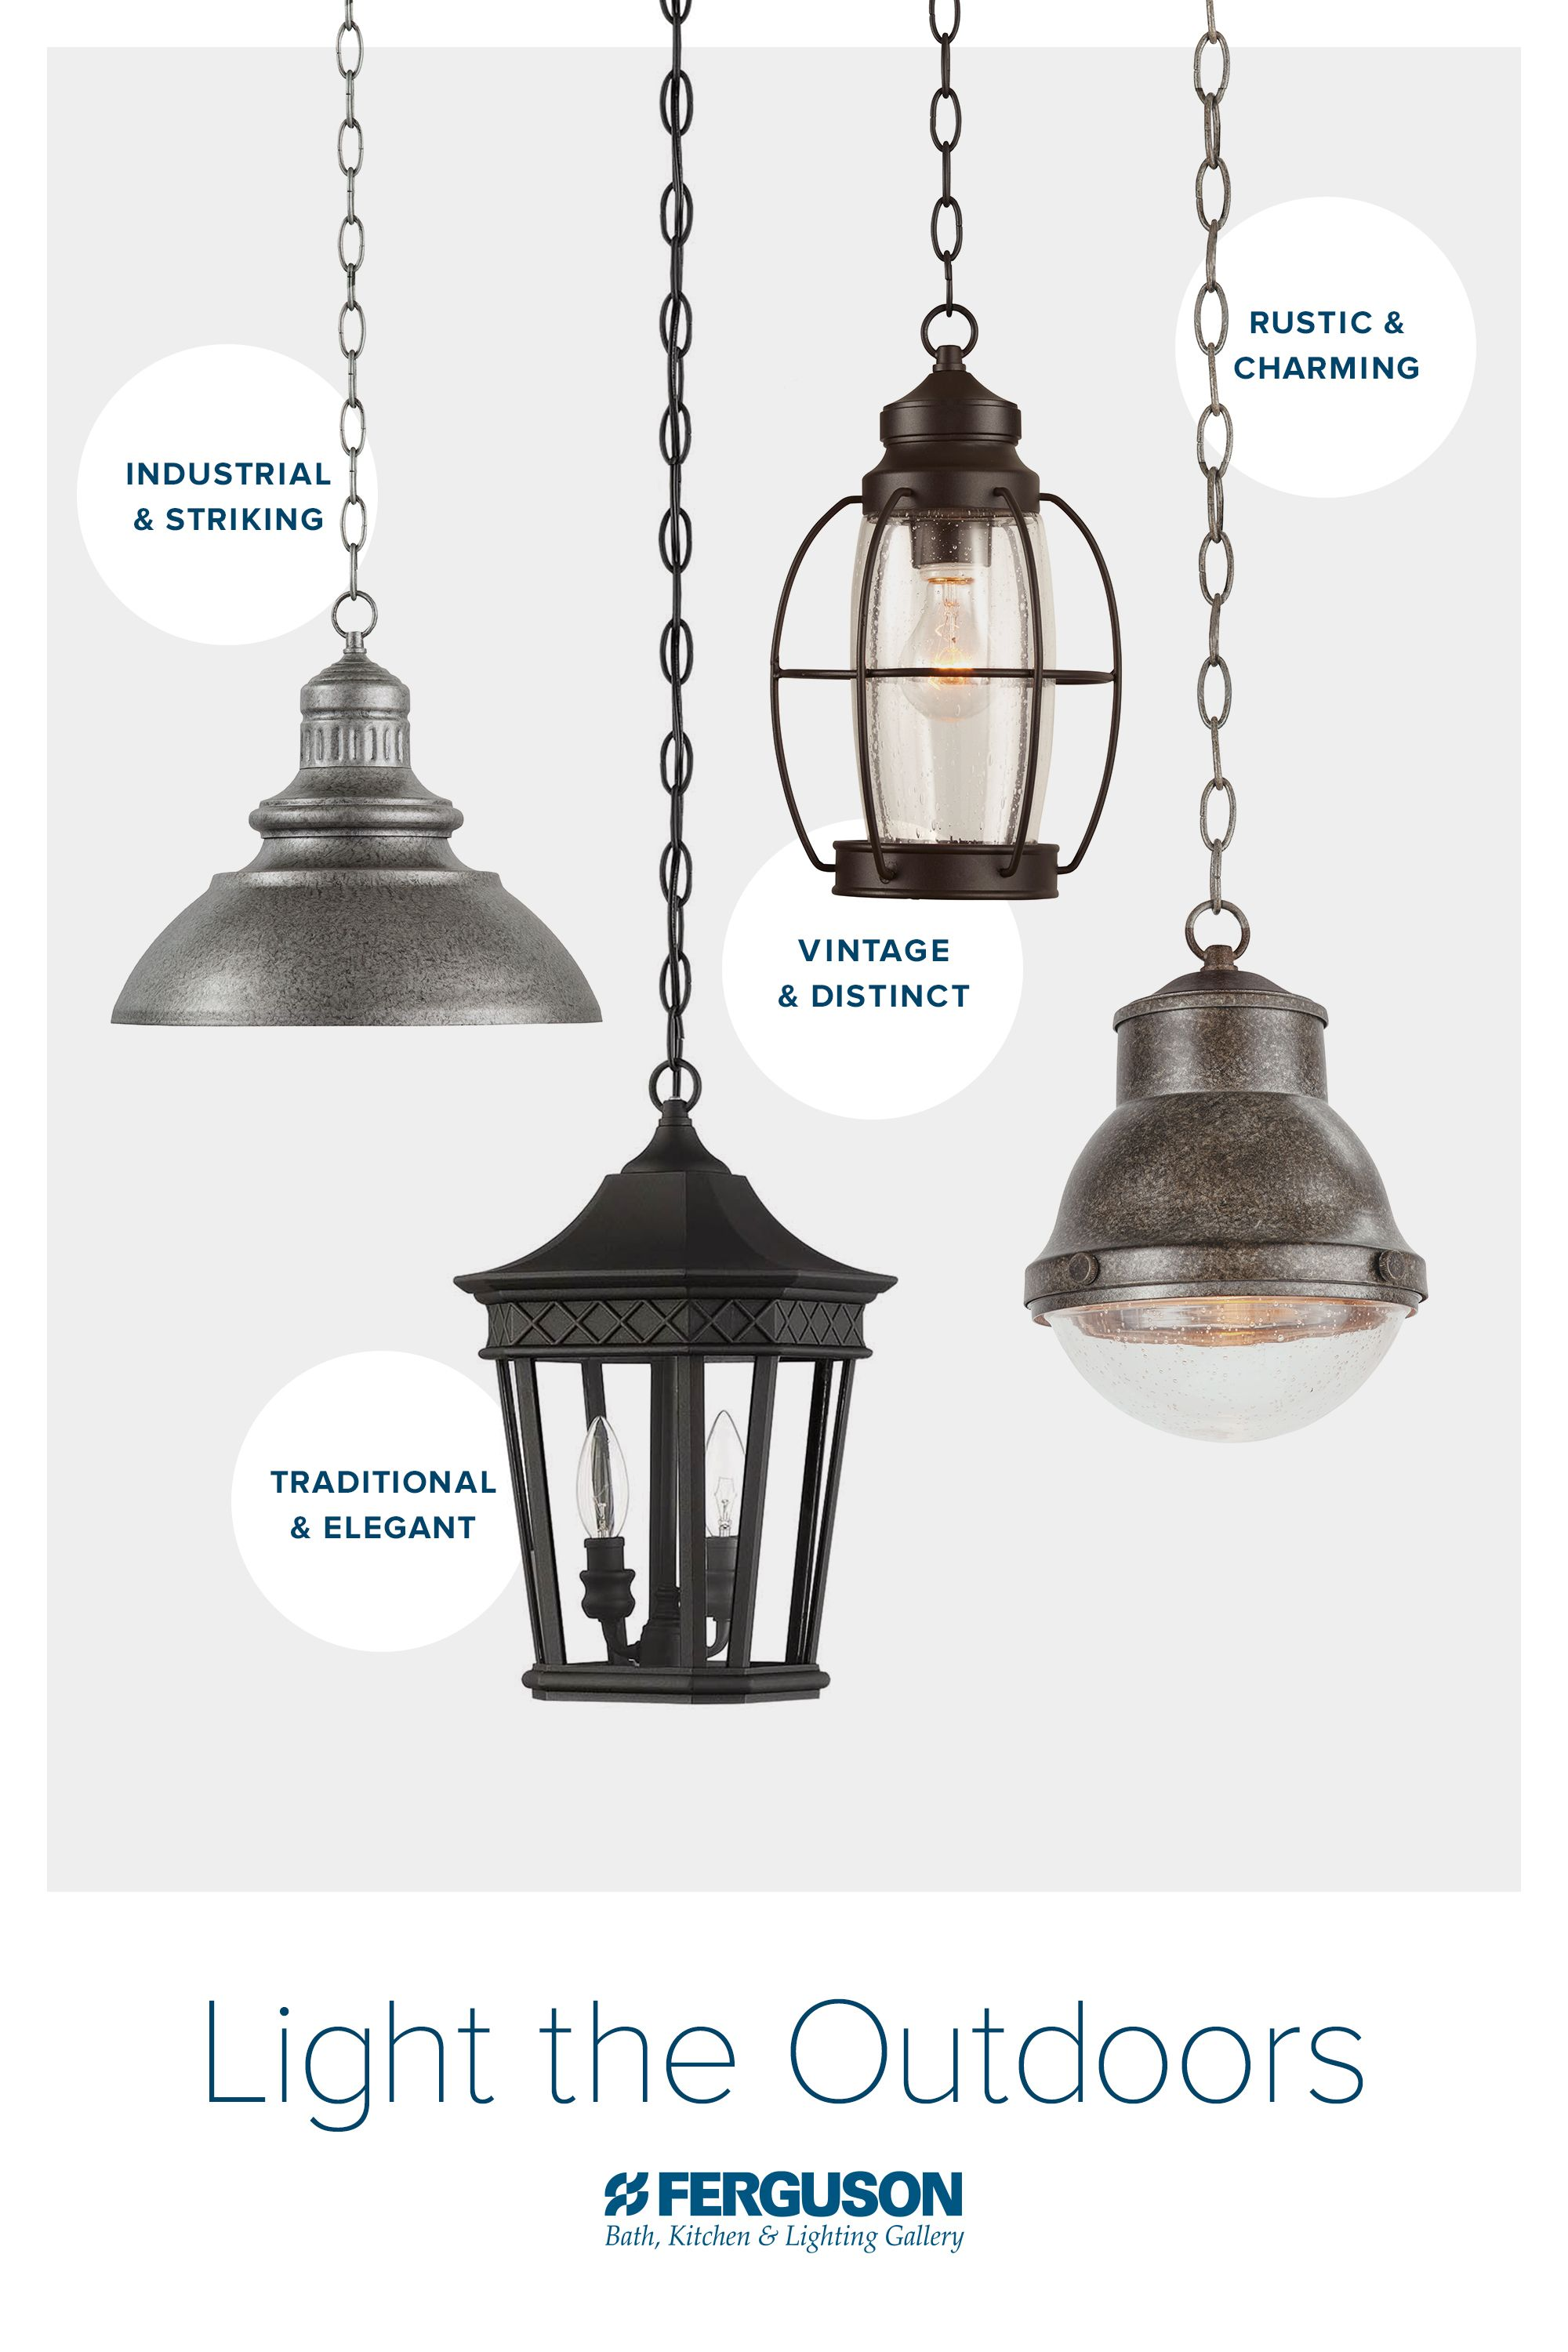 The Right Outdoor Hanging Lights Can Provide Dramatic And Instant